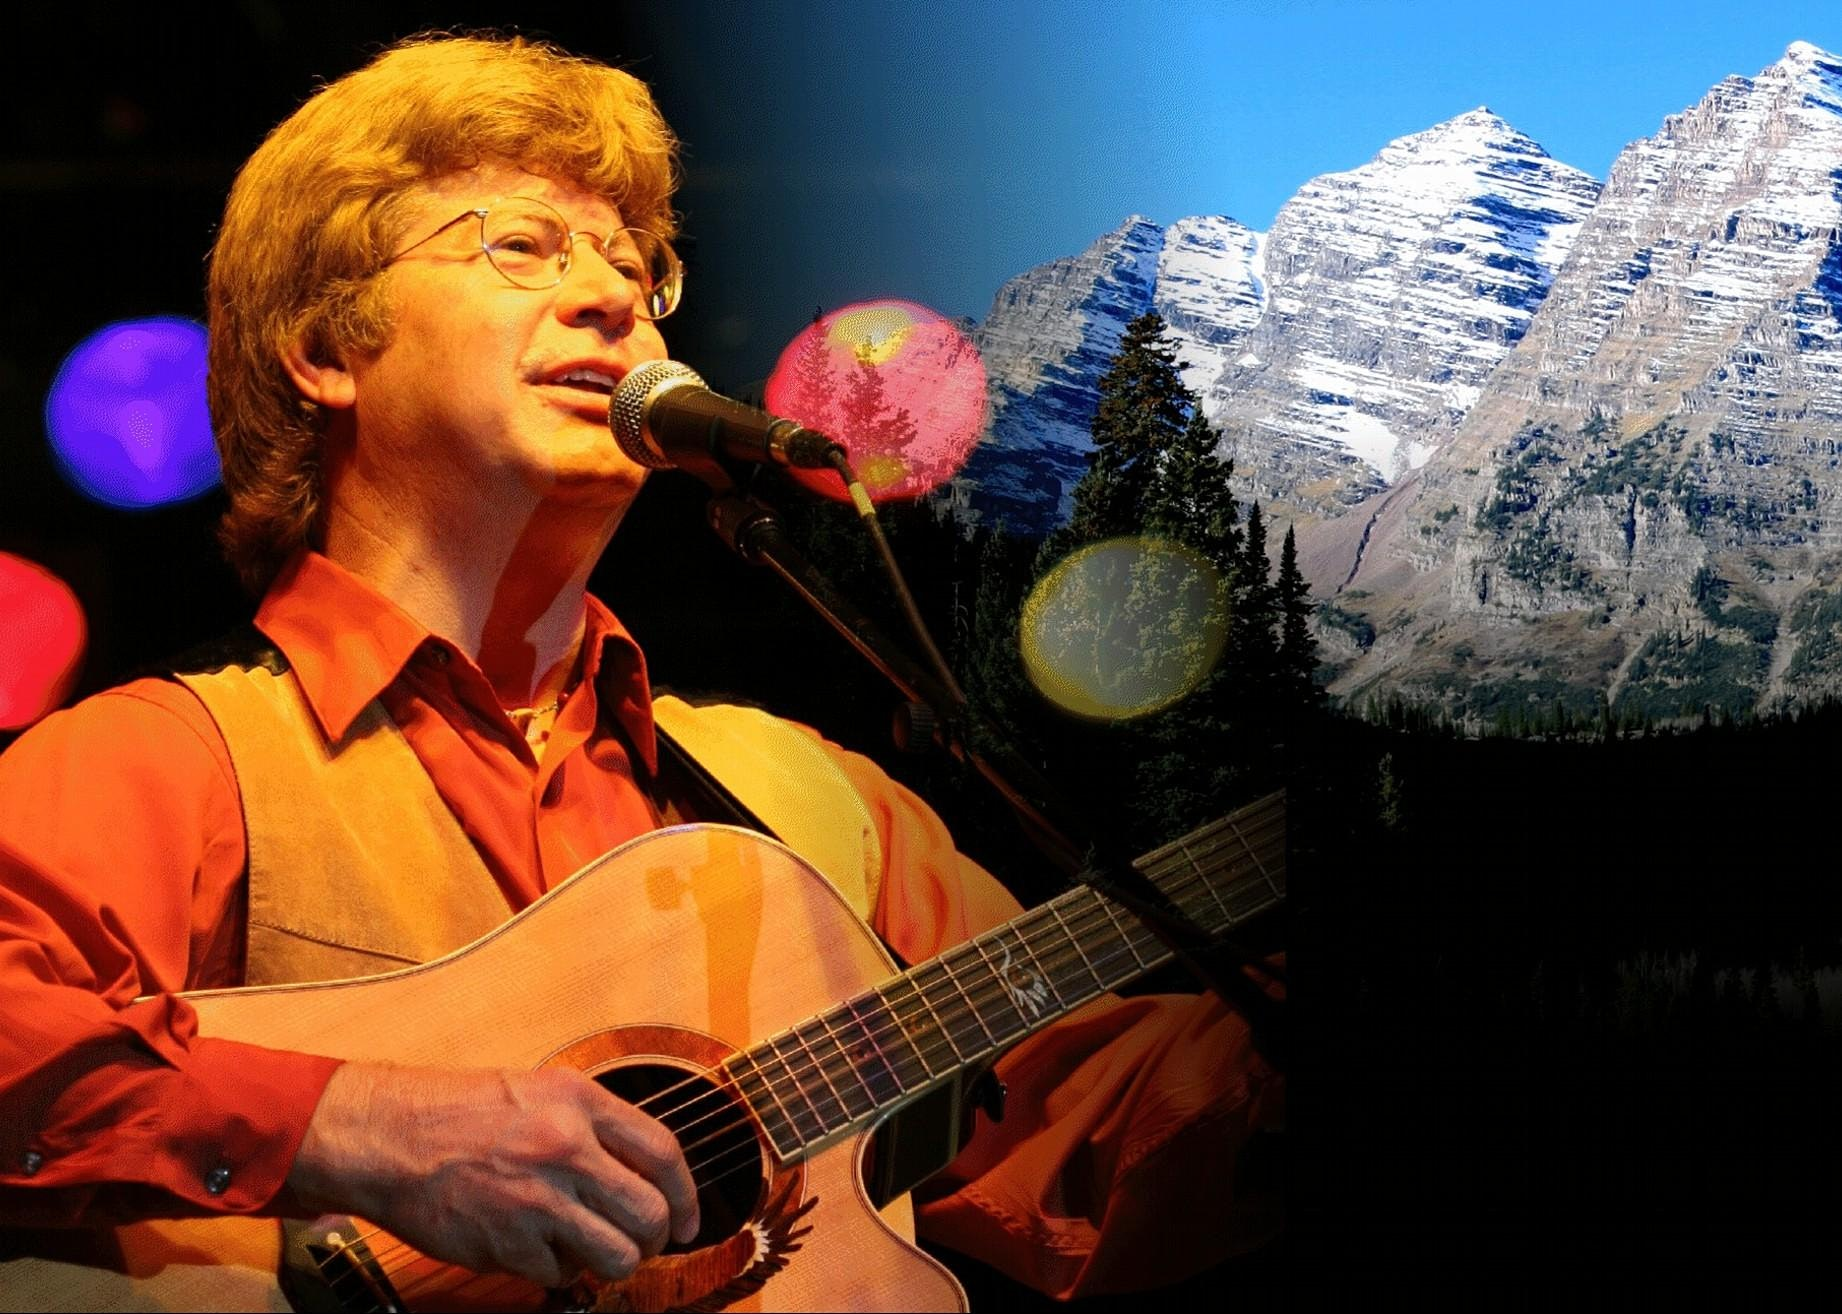 The Music of John Denver featuring Jim Curry